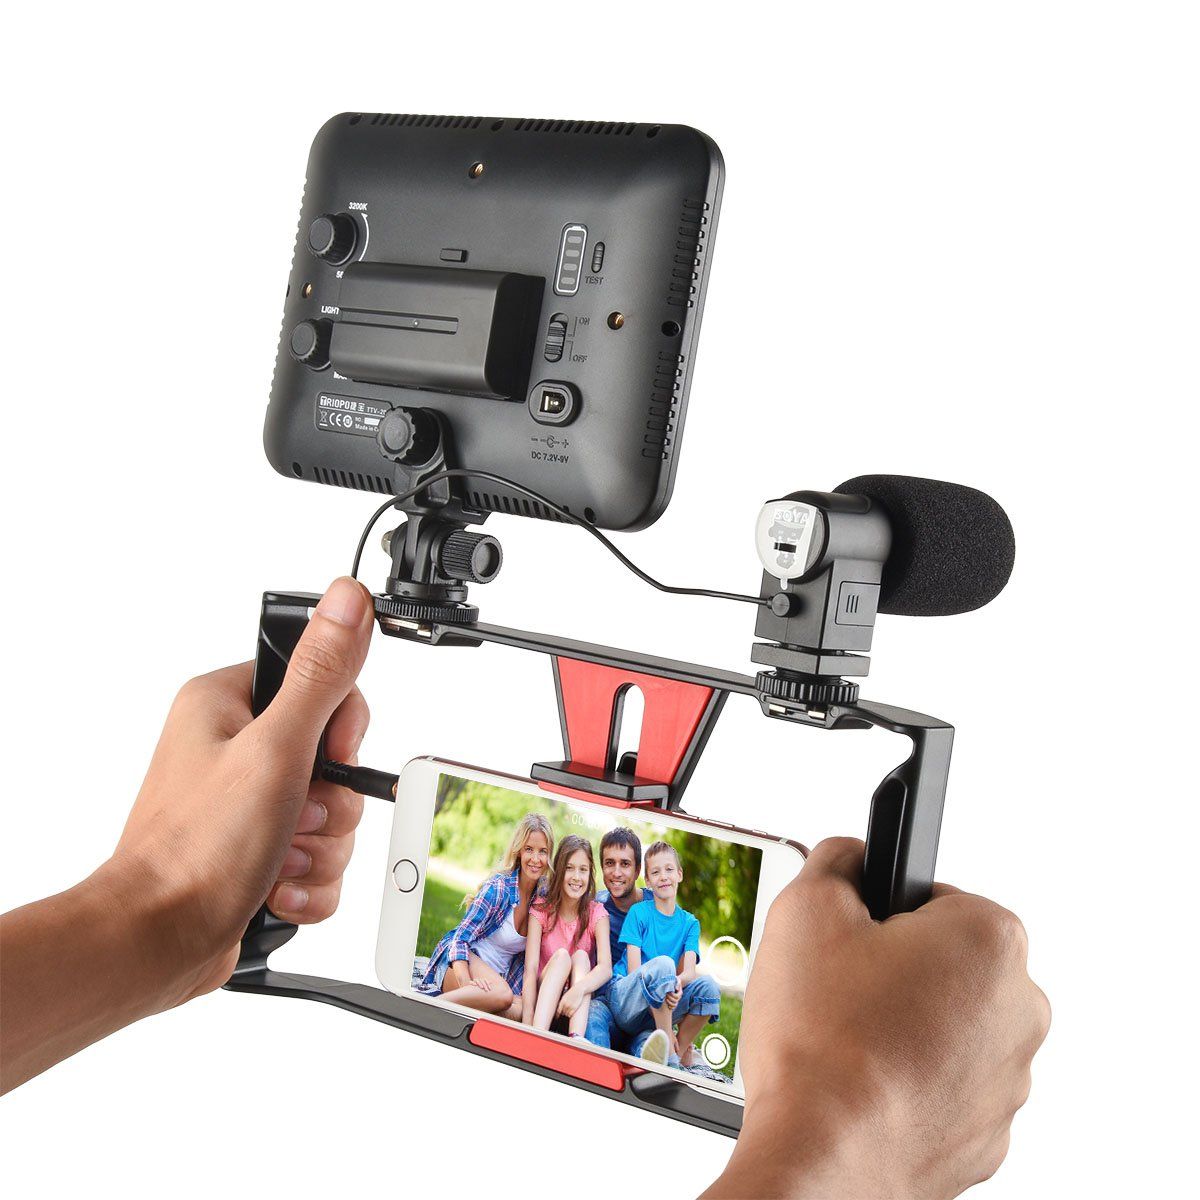 Ulanzi Smartphone Video Stabilizer Phone Movies &FilmmakerRig Handle Grip for Apple IPhone 5, 5C, 5S, 6, 6S, 7 (Regular and Plus), Samsung,HTC, Huawei, Google, Android Smartphones..